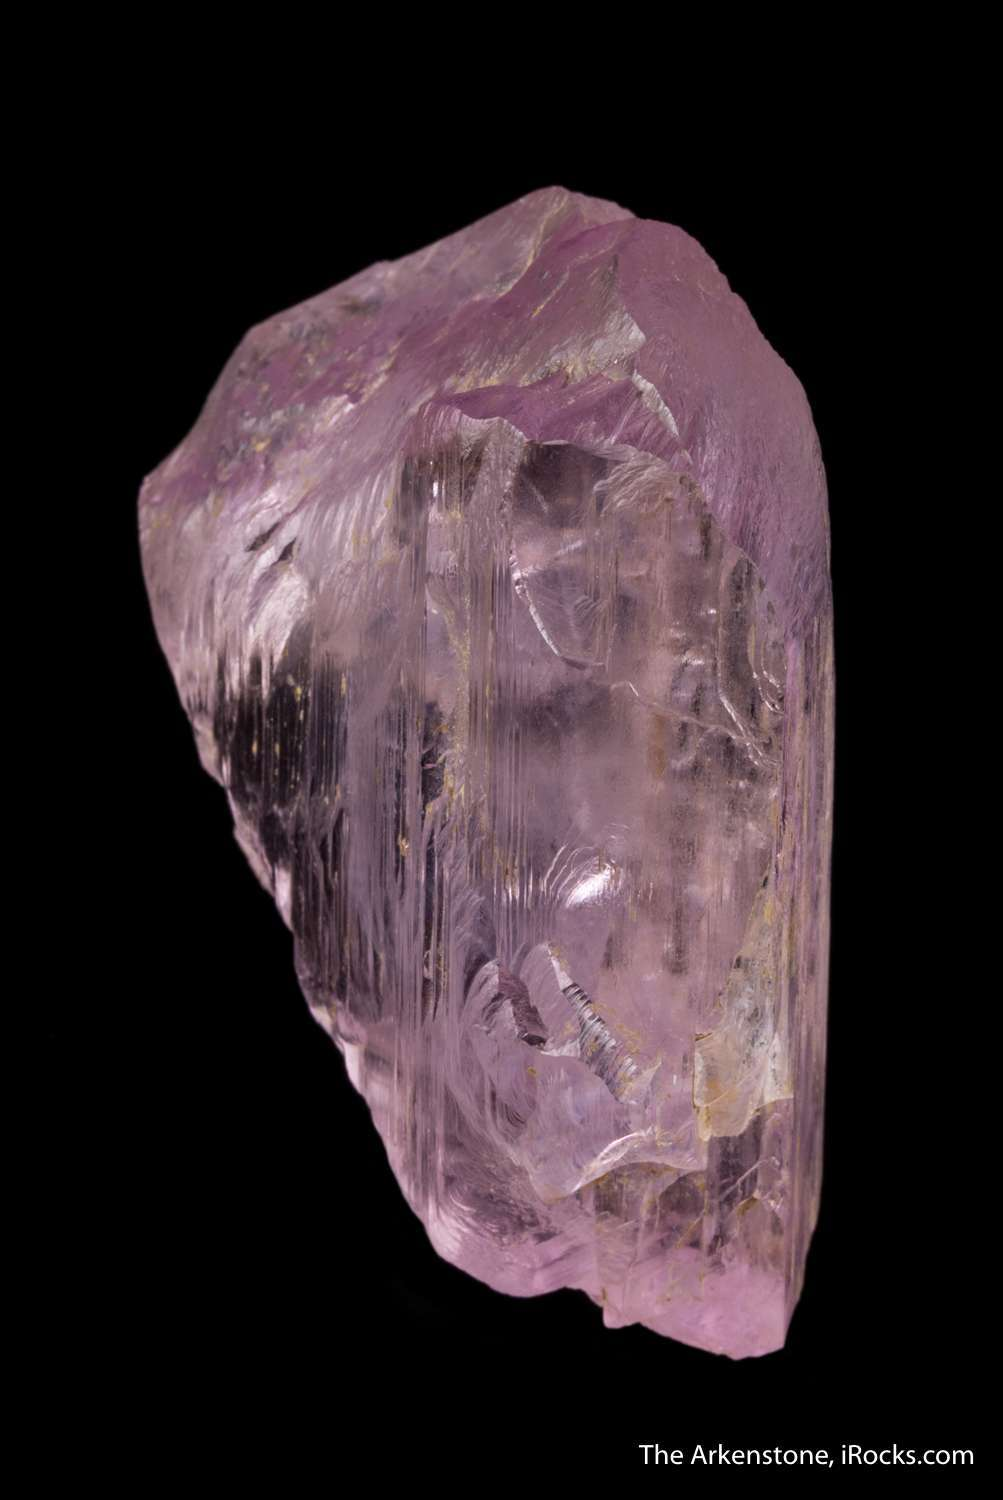 In late 1940s George Ashley discovered large cache kunzite Vanderberg